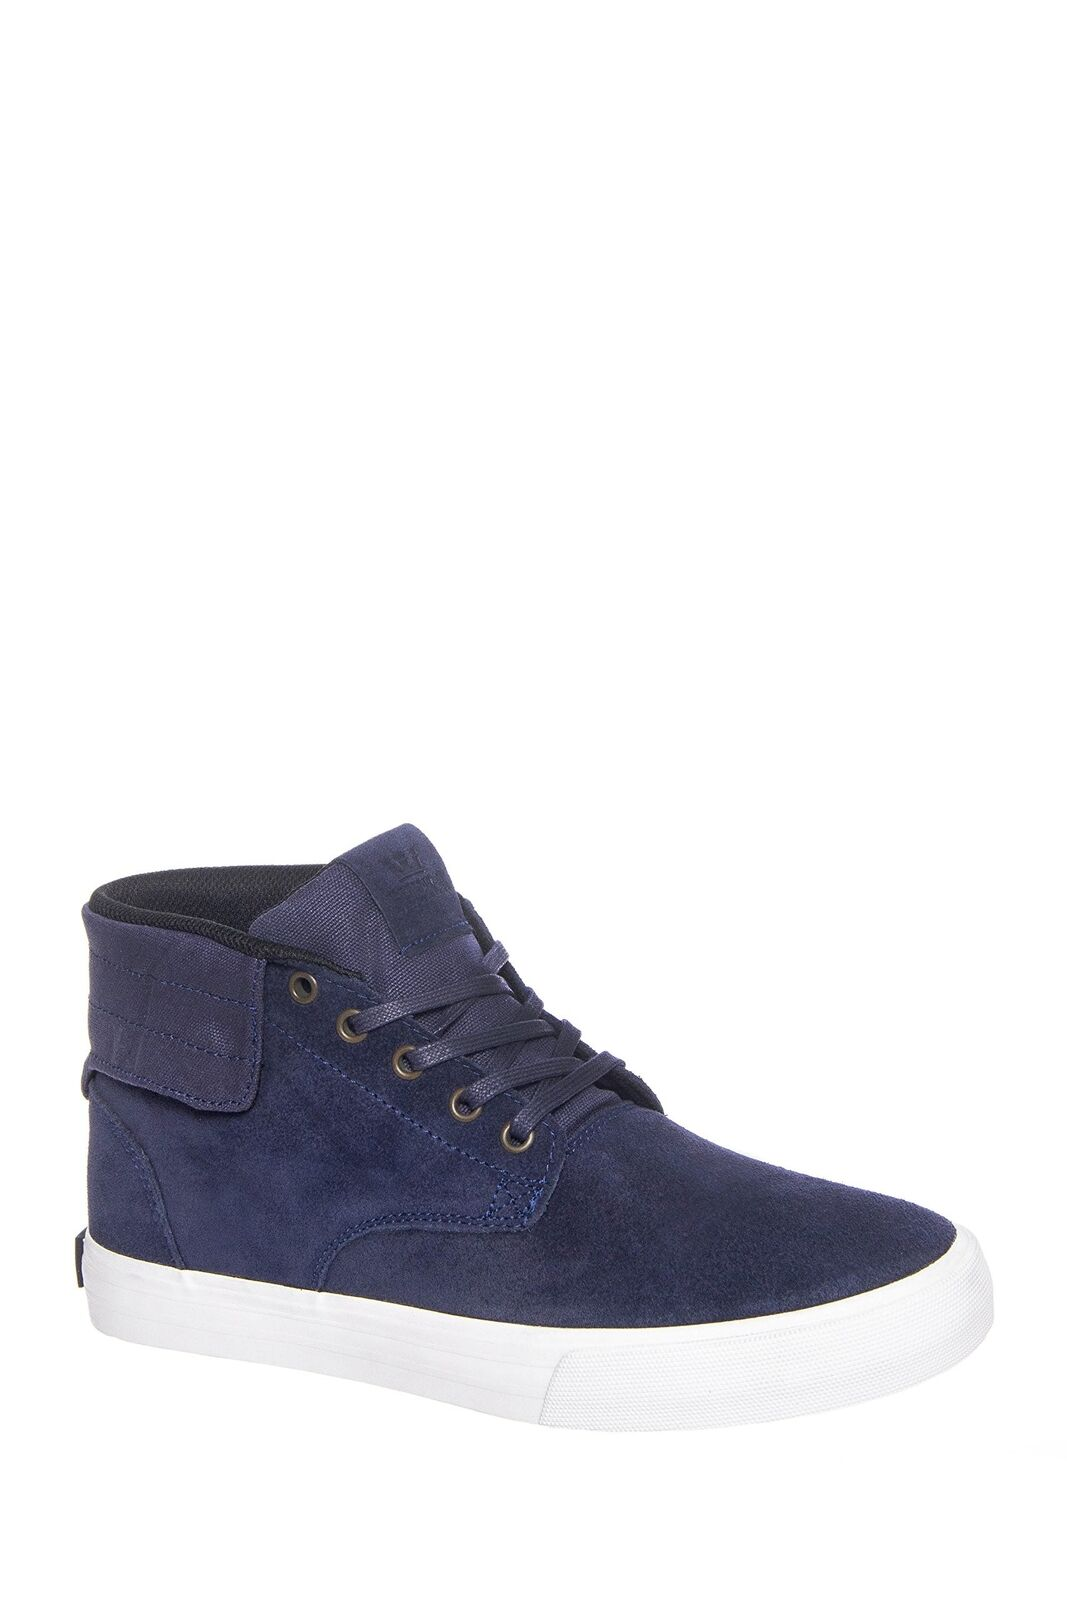 Supra Passion Navy-Off White Size 11.5